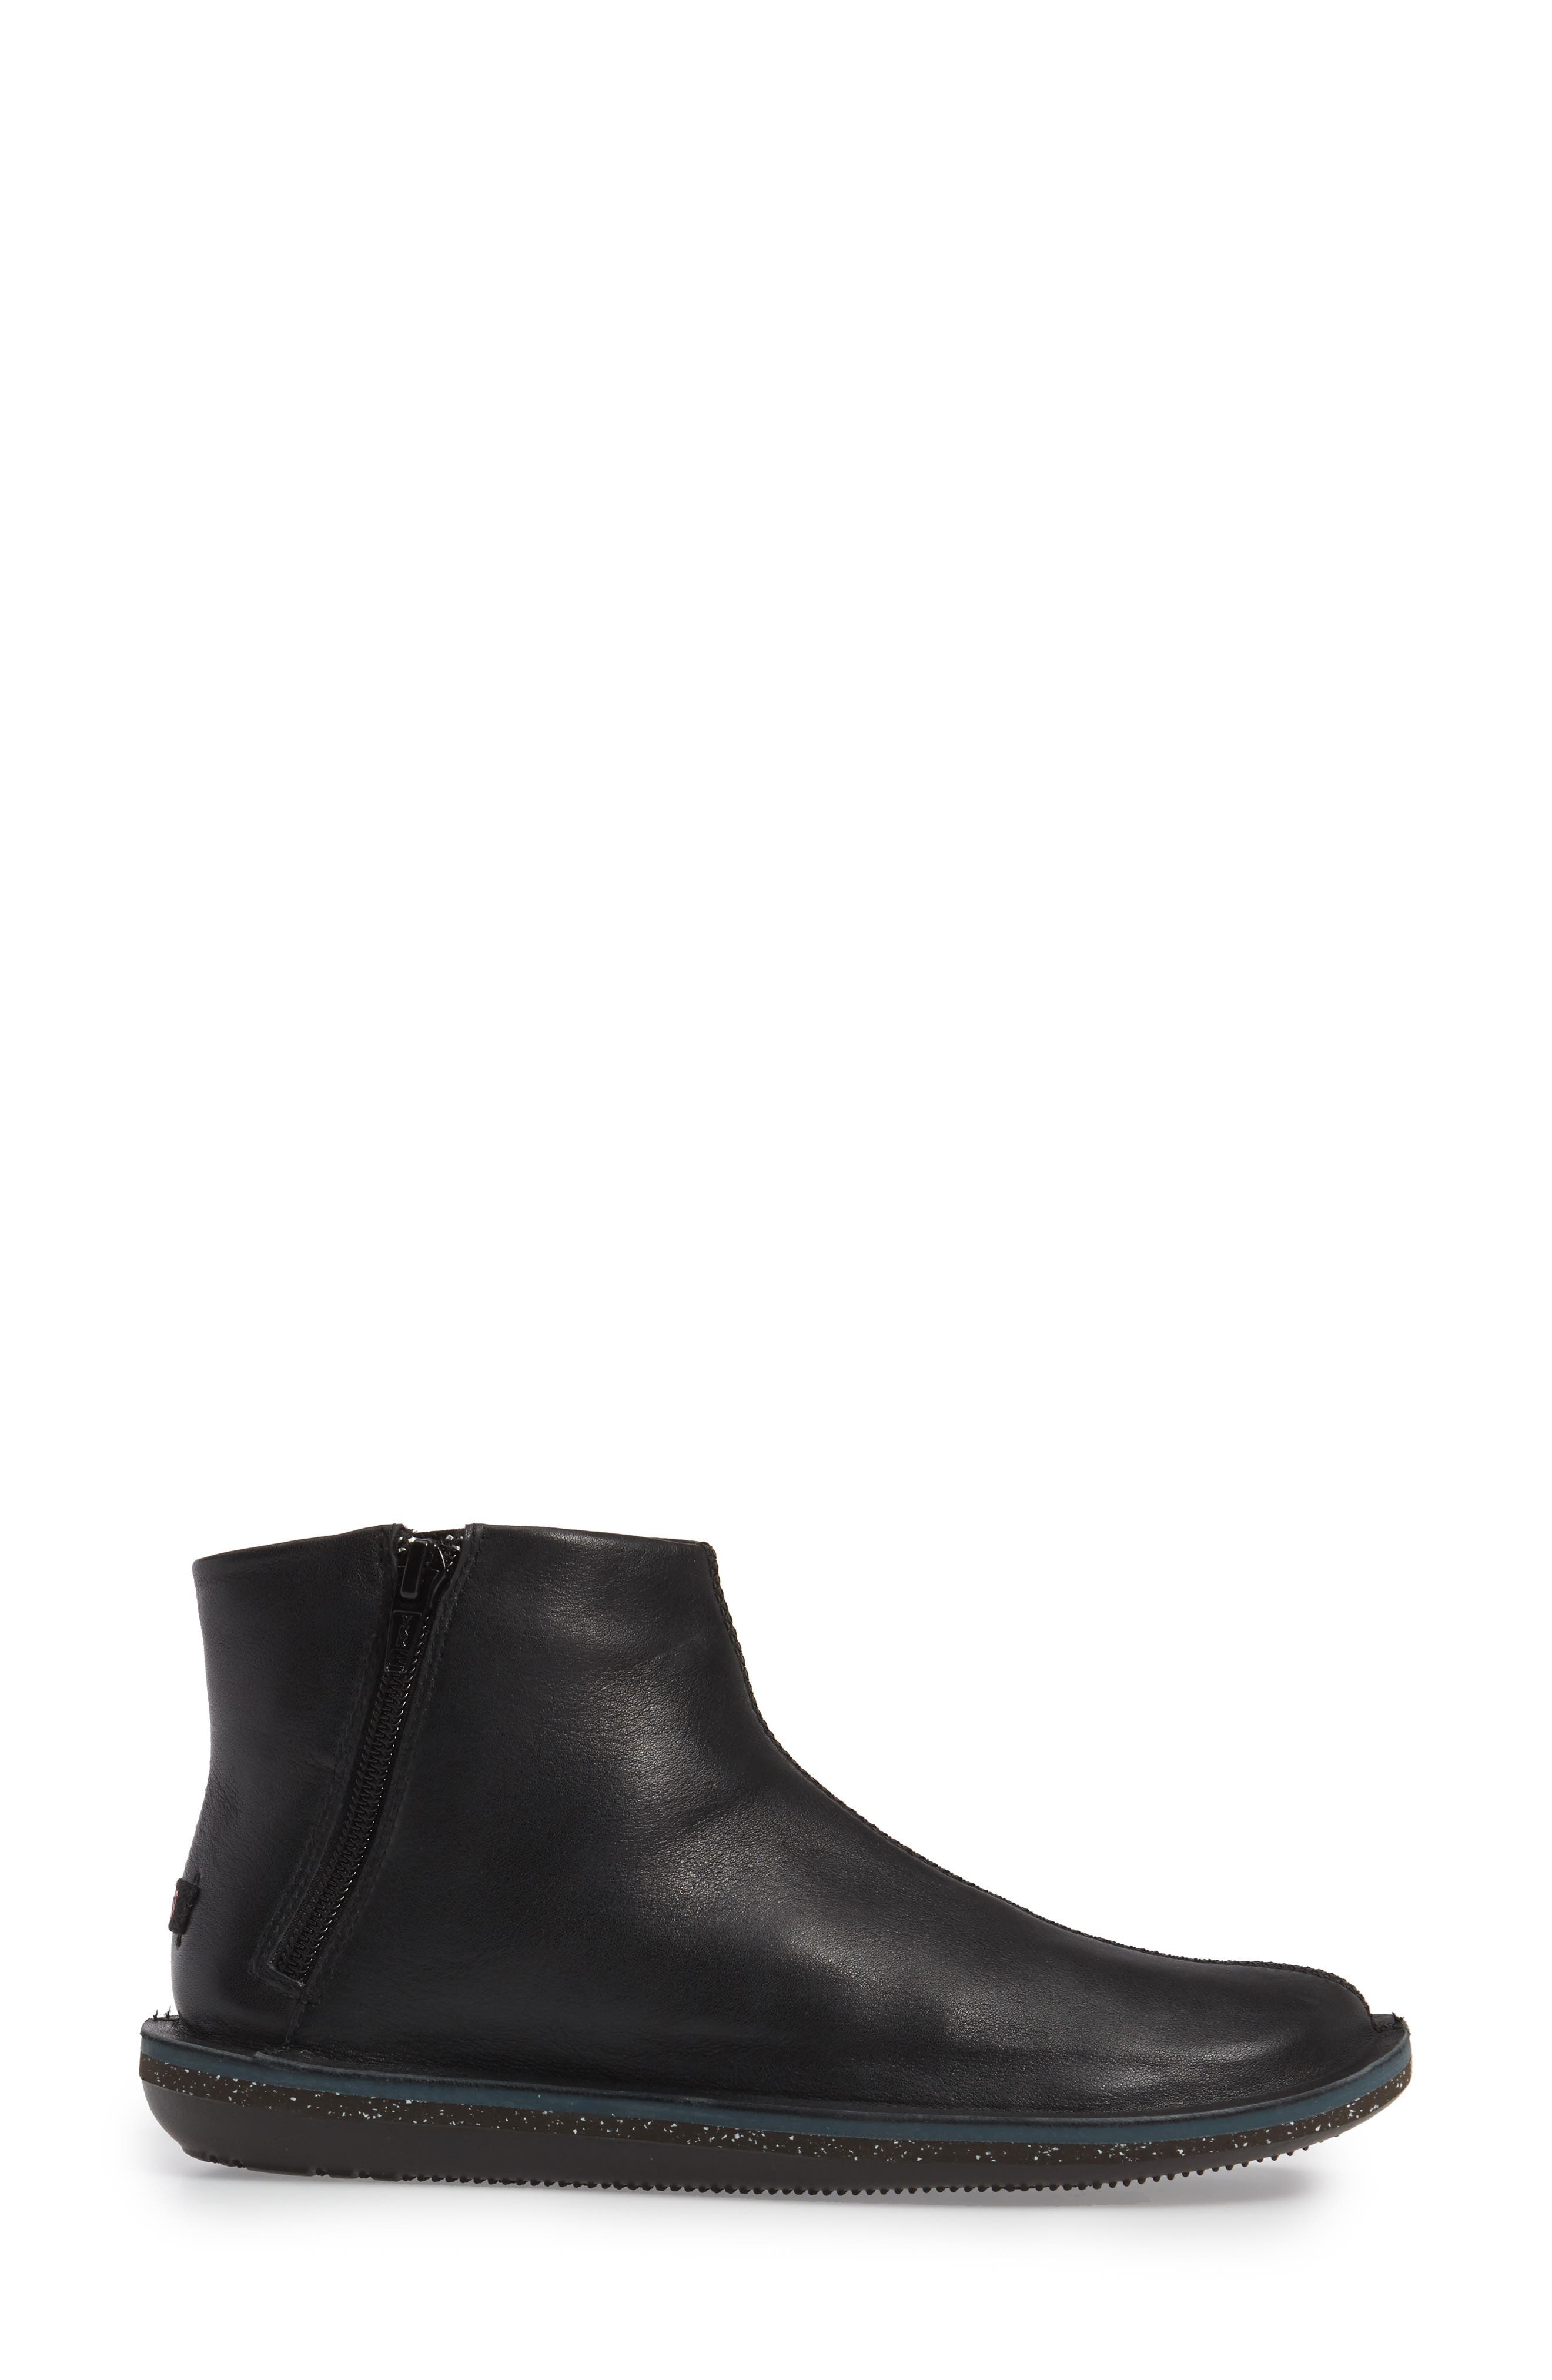 'Beetle' Ankle Bootie,                             Alternate thumbnail 3, color,                             Black Leather